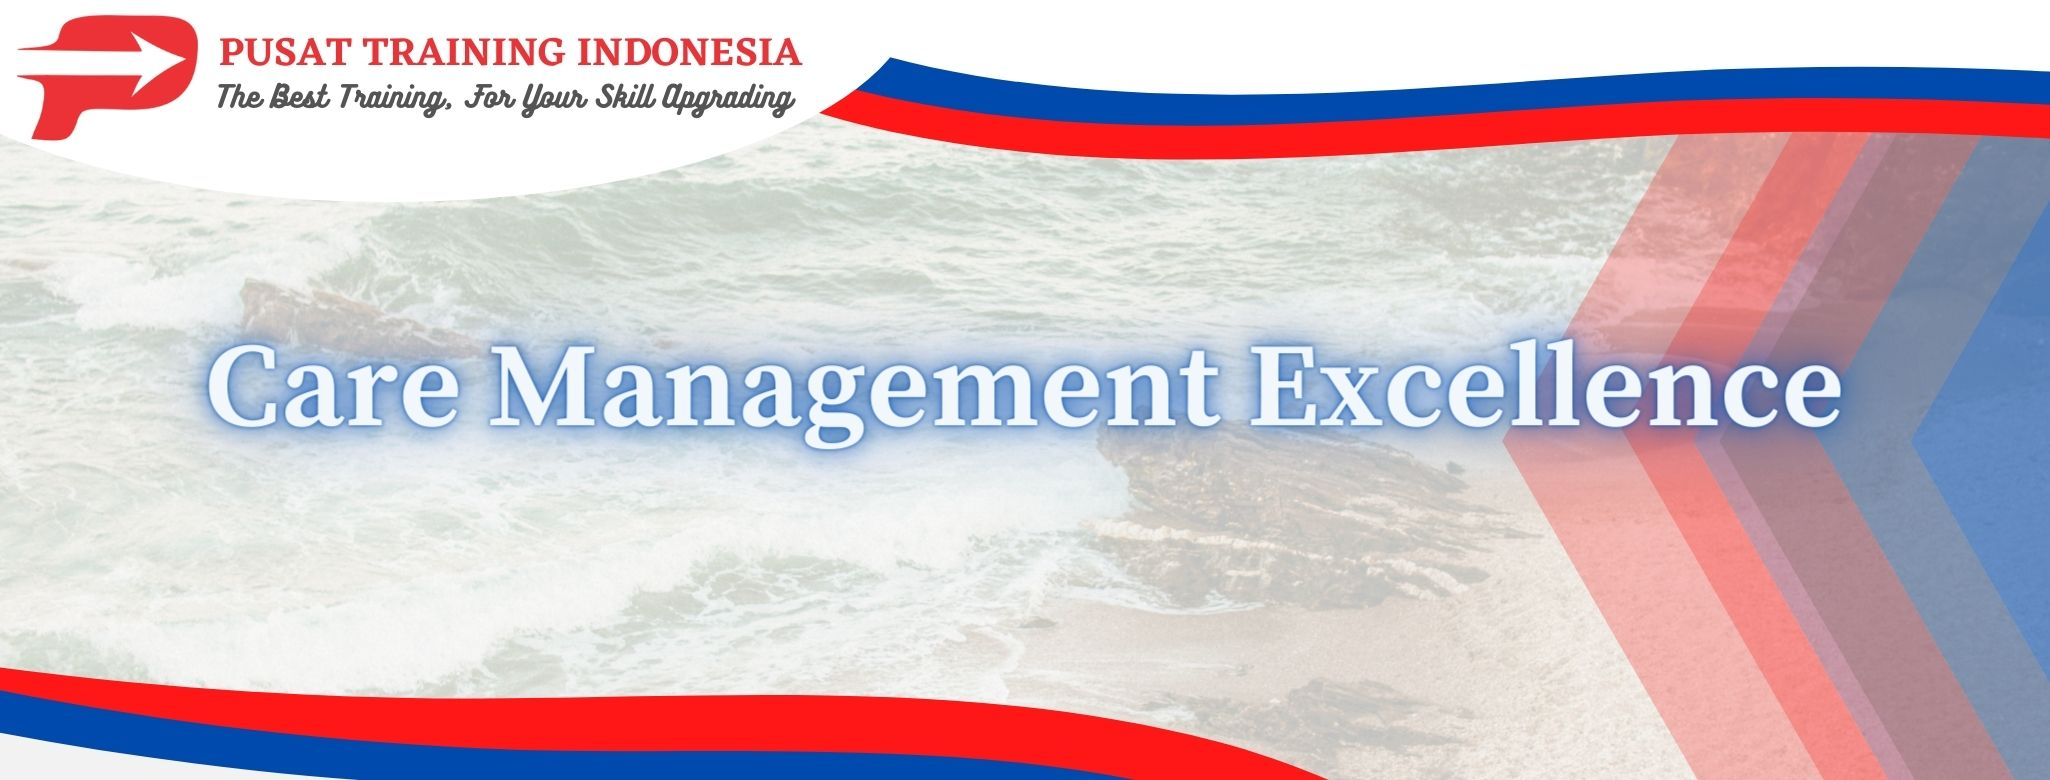 Care-Management-Excellence